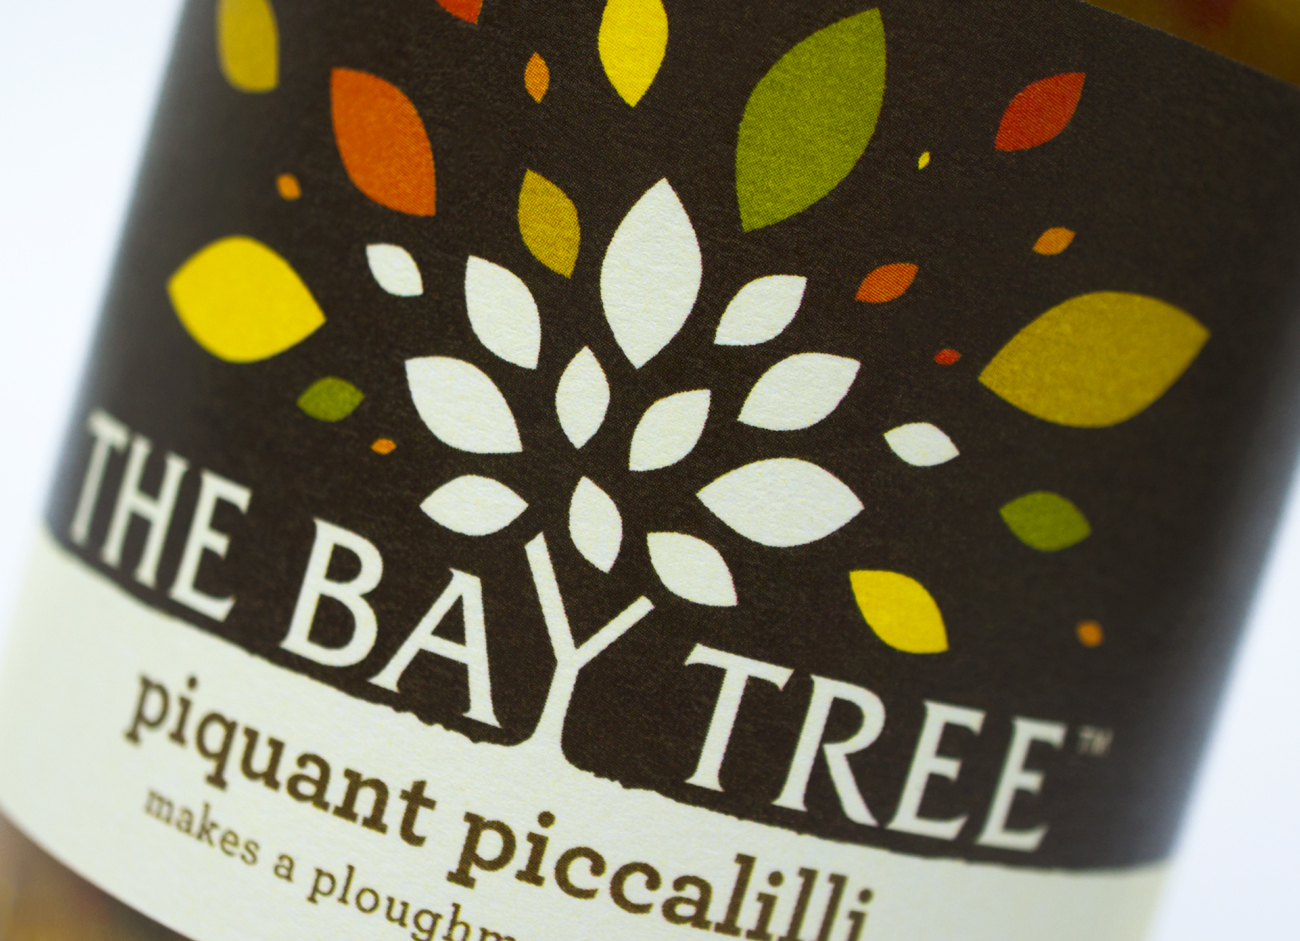 Bay_tree_close_up